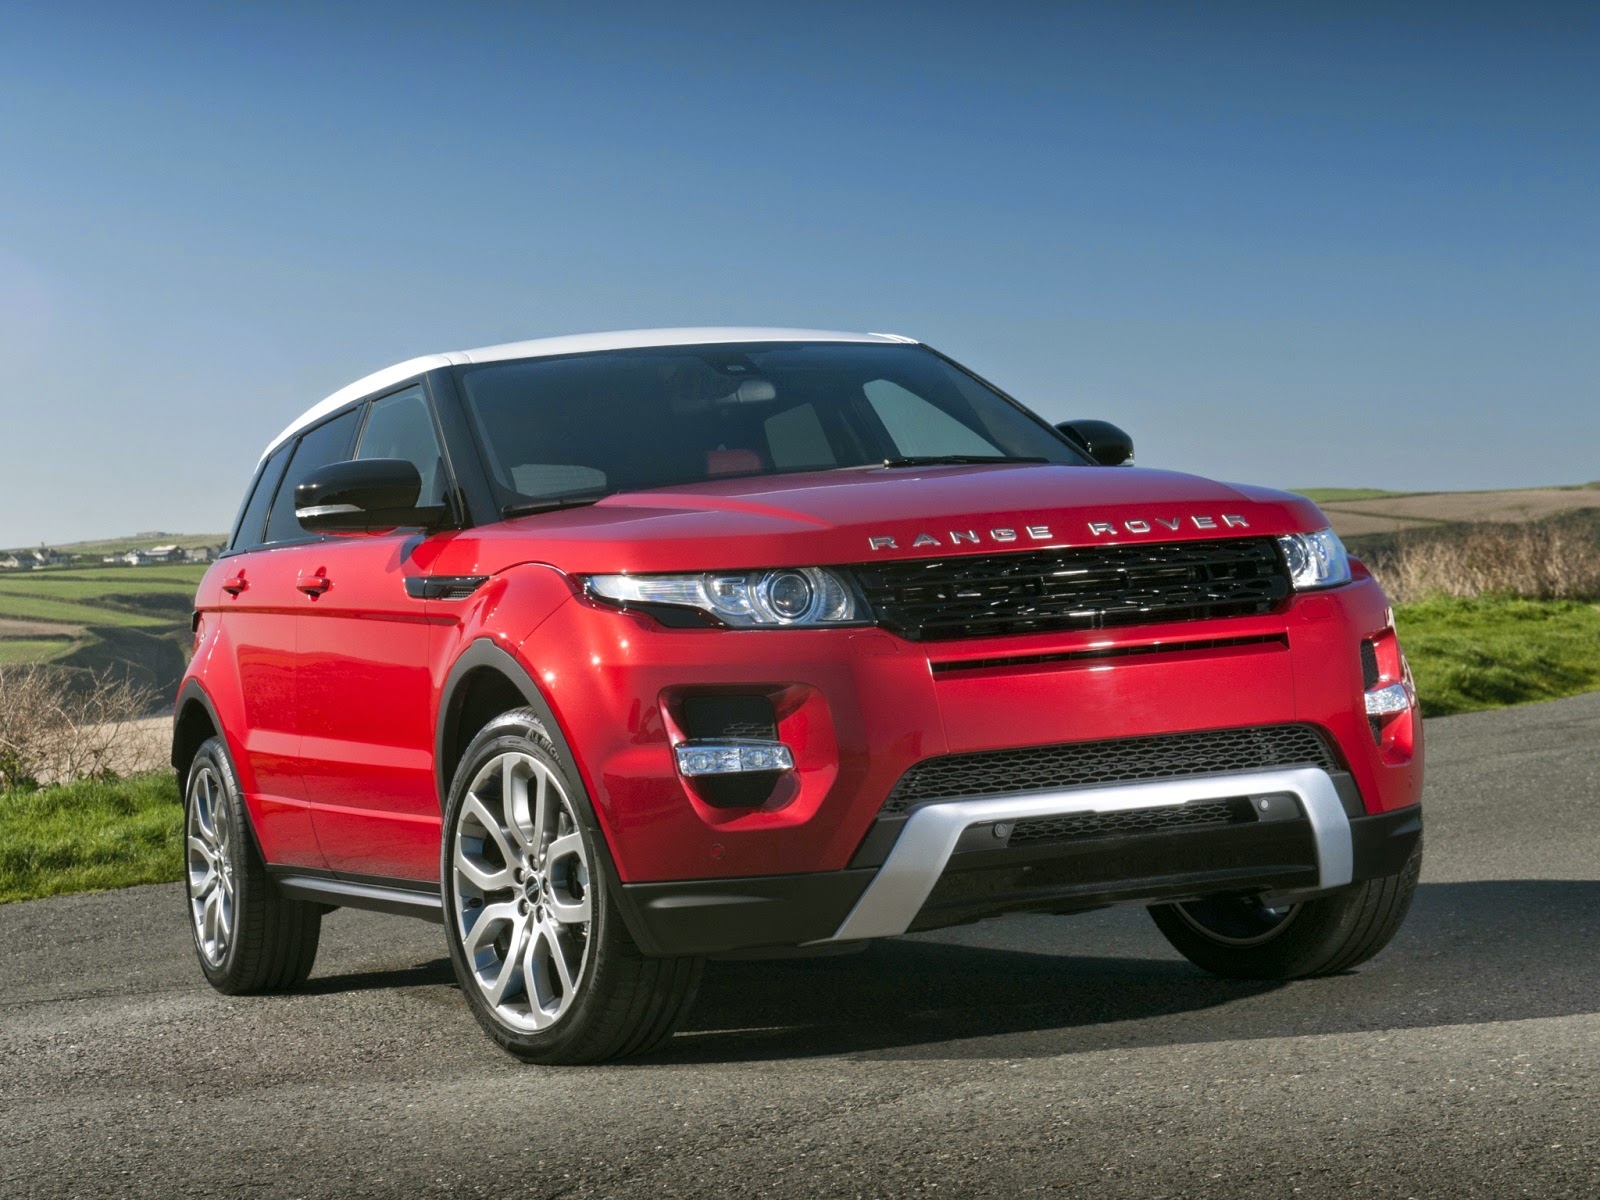 19 range rover evoque the ultimate luxury compact crossover jeep cars 007. Black Bedroom Furniture Sets. Home Design Ideas